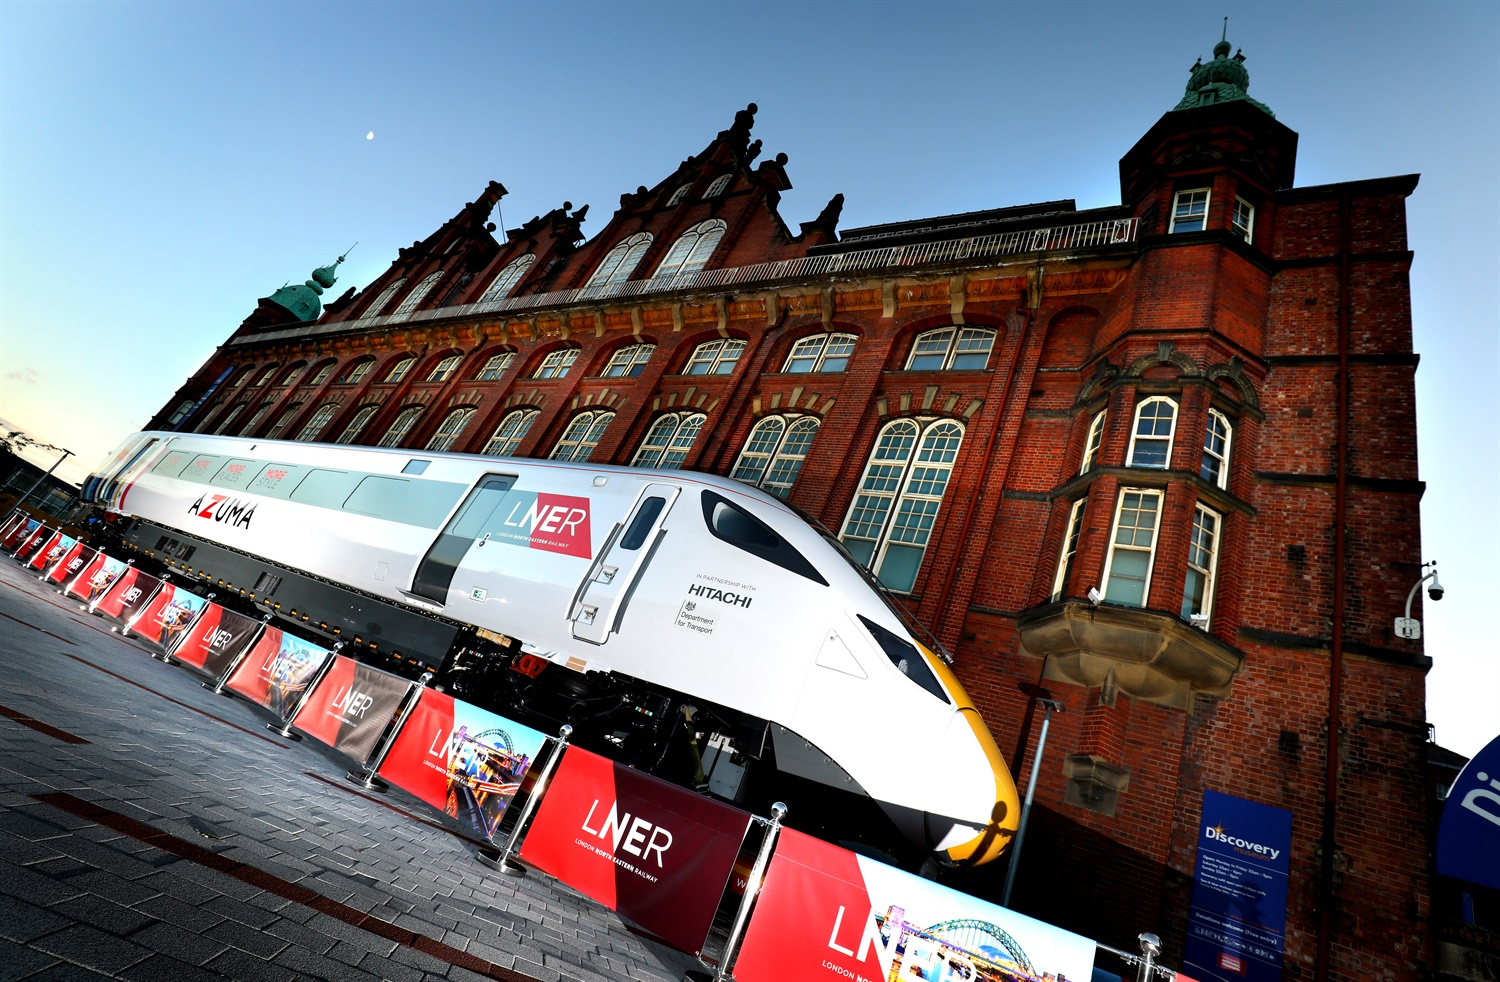 LNER: Business as usual